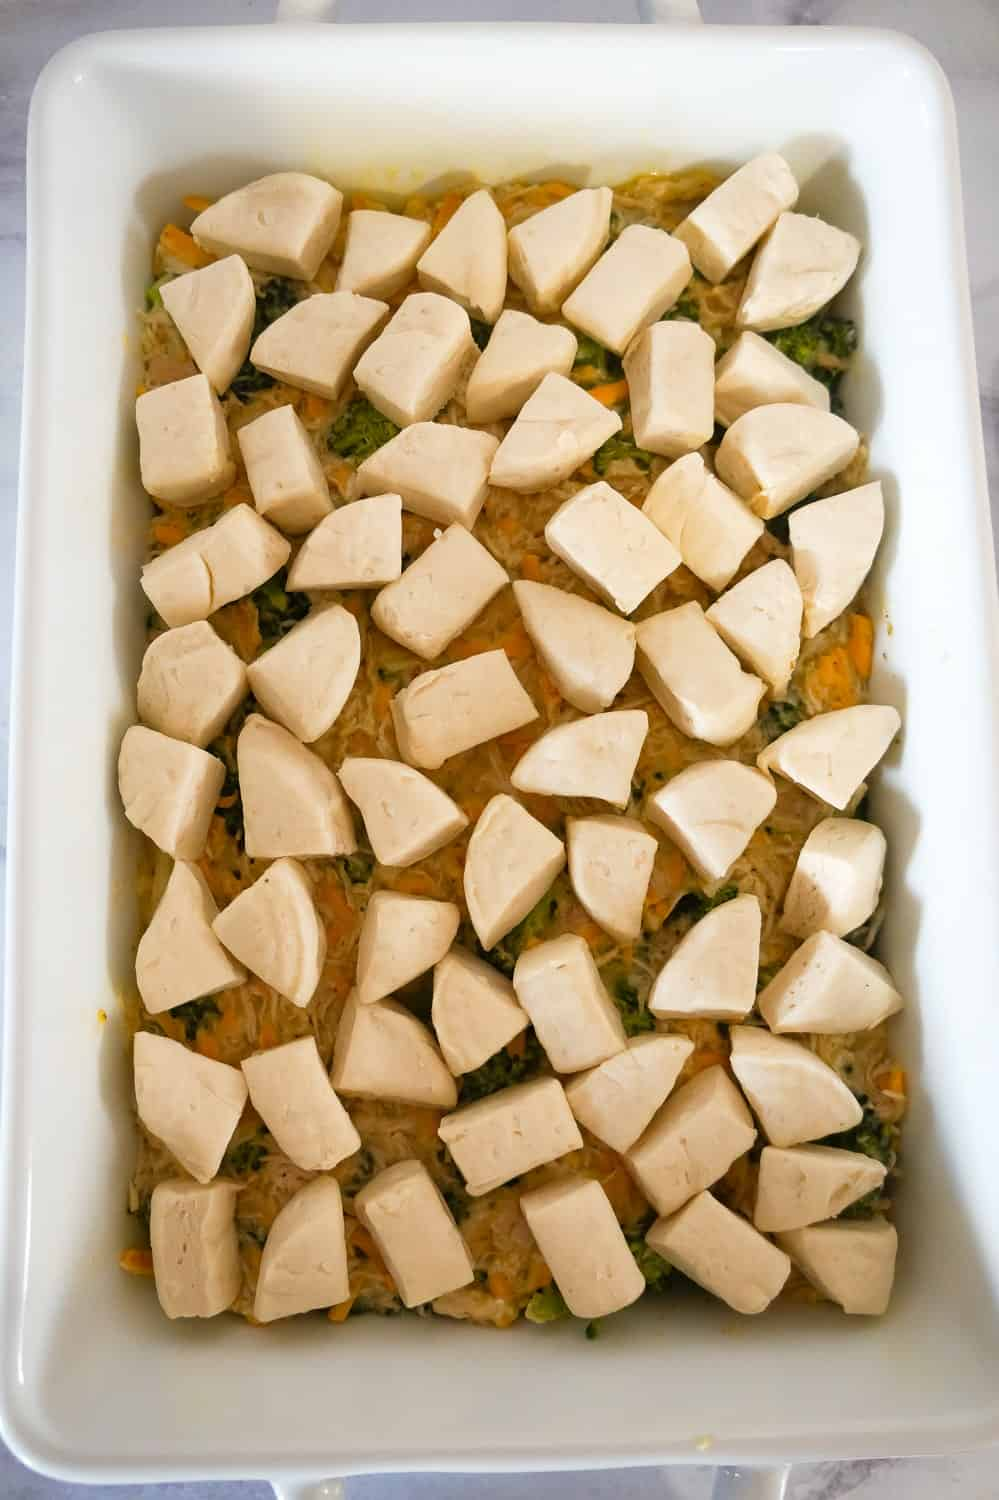 biscuit dough pieces on top of chicken and broccoli mixture in a baking dish